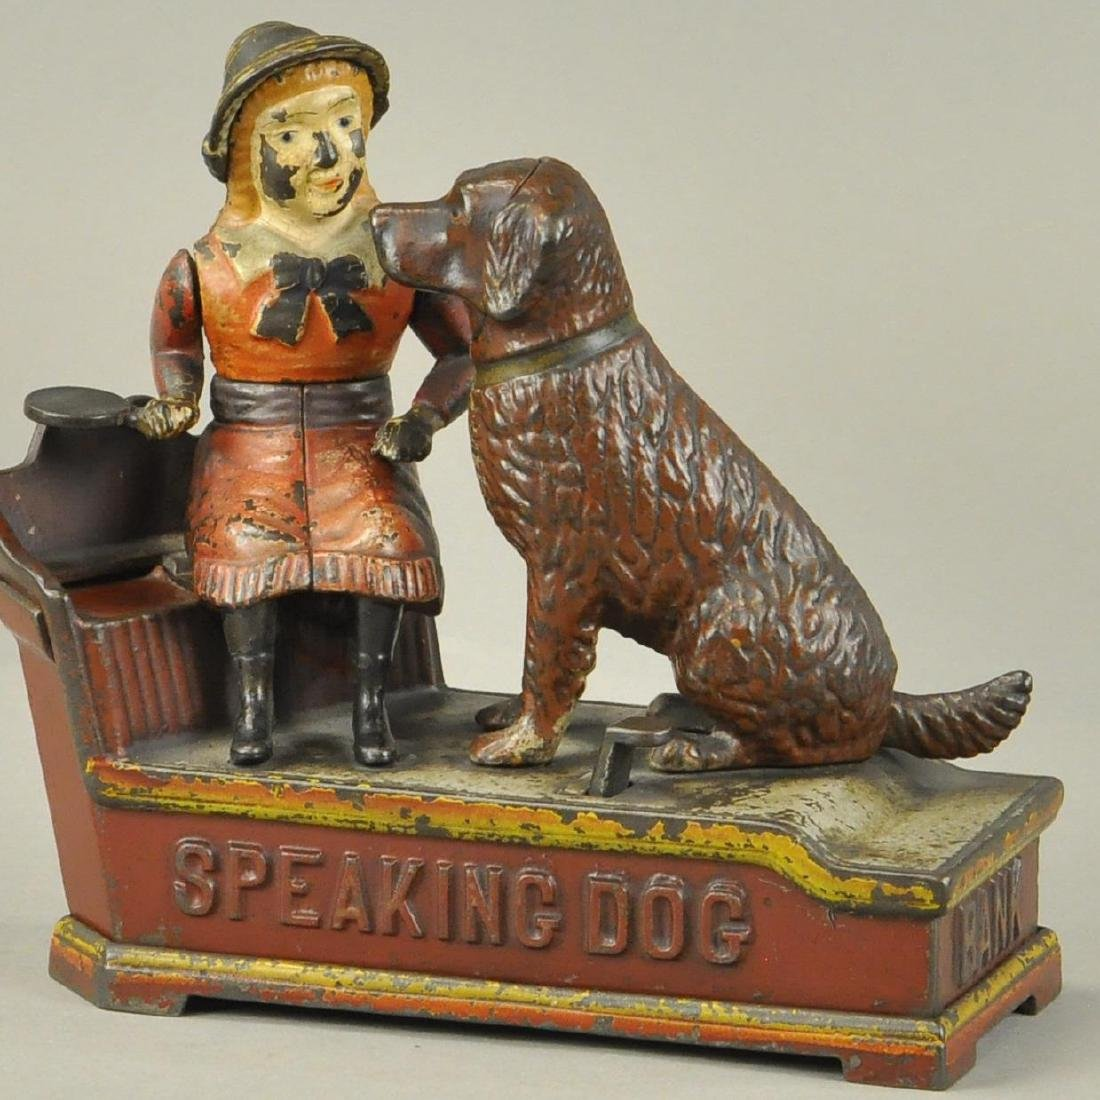 SPEAKING DOG MECHANICAL BANK - SHEPPARD HARDWARE